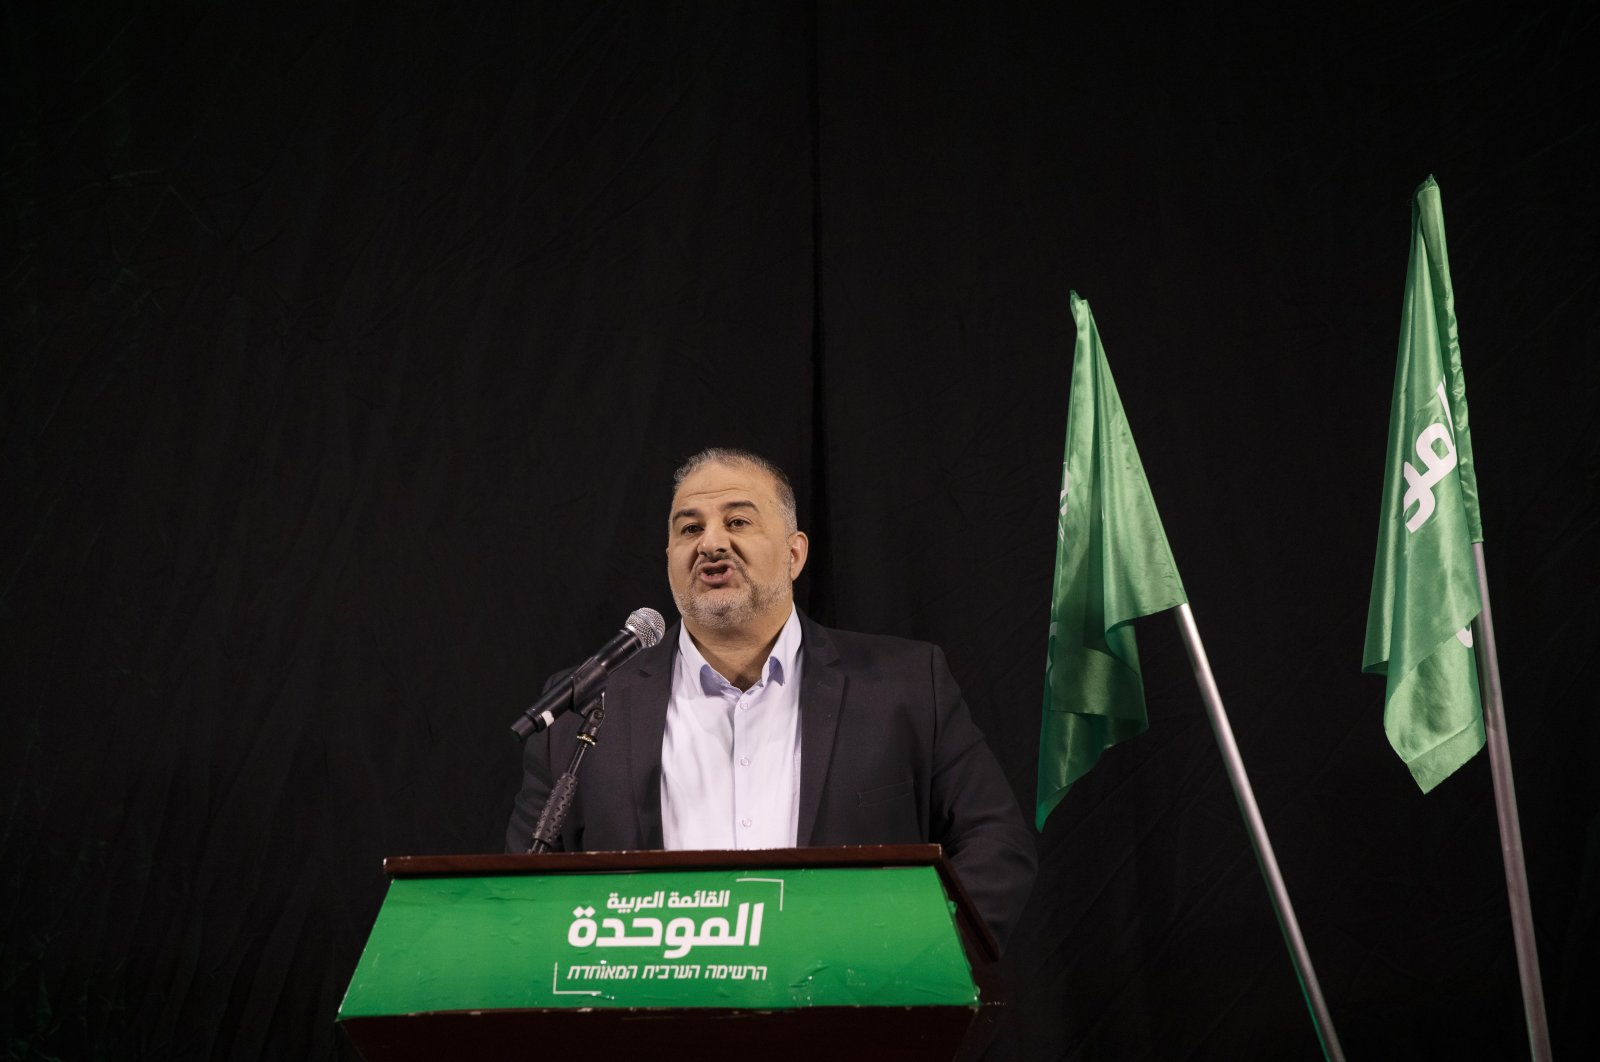 Mansour Abbas, leader of the United Arab List, also known by the Hebrew name Ra'am, delivers a statement in Nazareth, Israel, Thursday, April 1, 2021. (AP Photo)